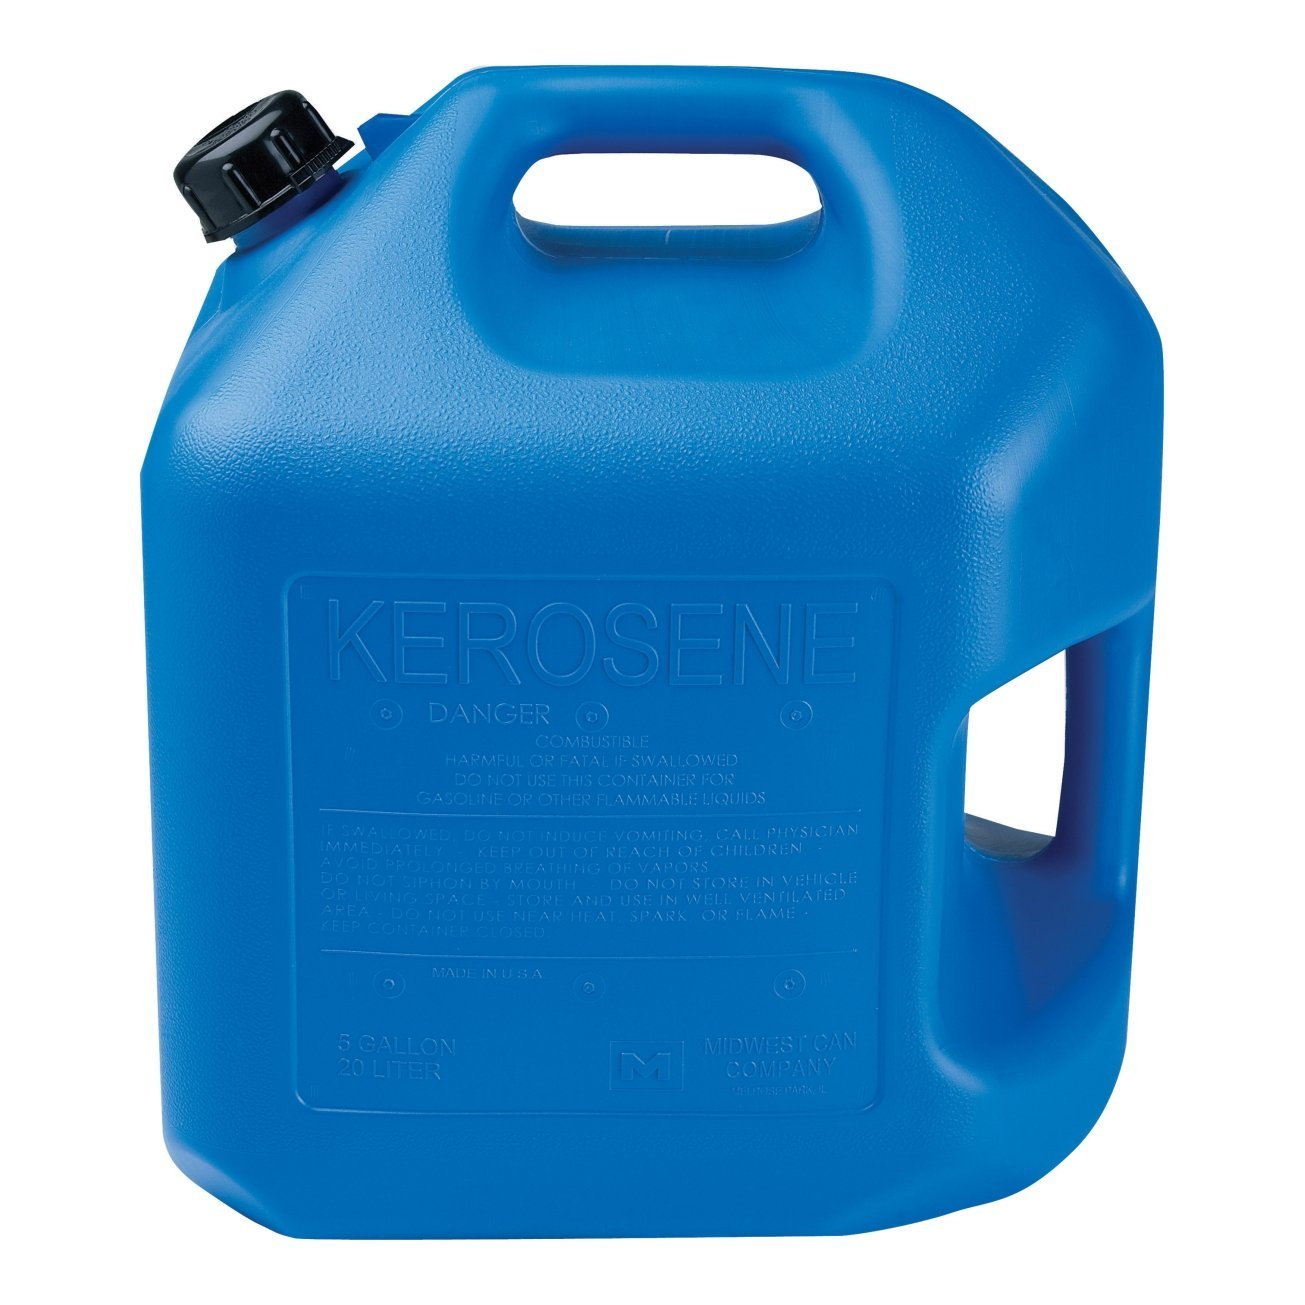 Midwest Can 7600 Kerosene Can - 5 Gallon Capacity by Midwest Can